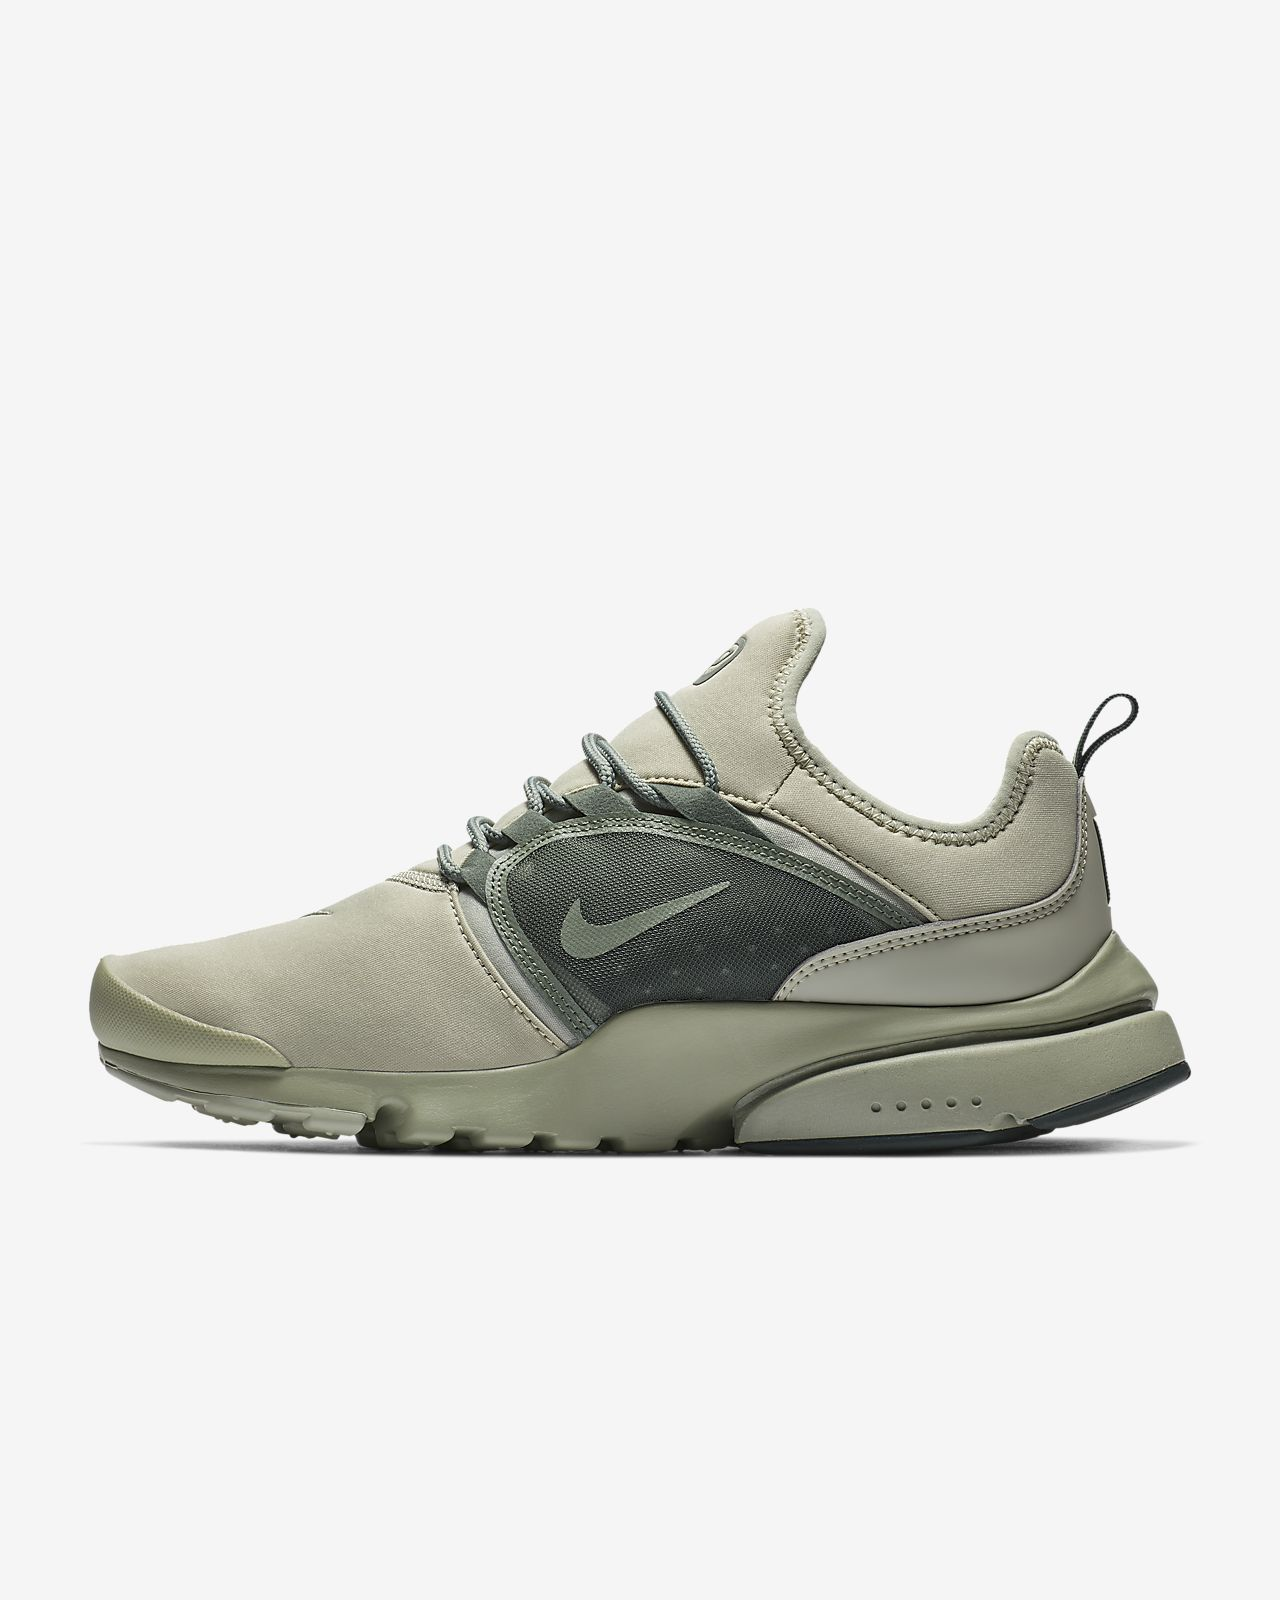 Nike Men's ShoeGb Presto Fly World RLSc43A5jq